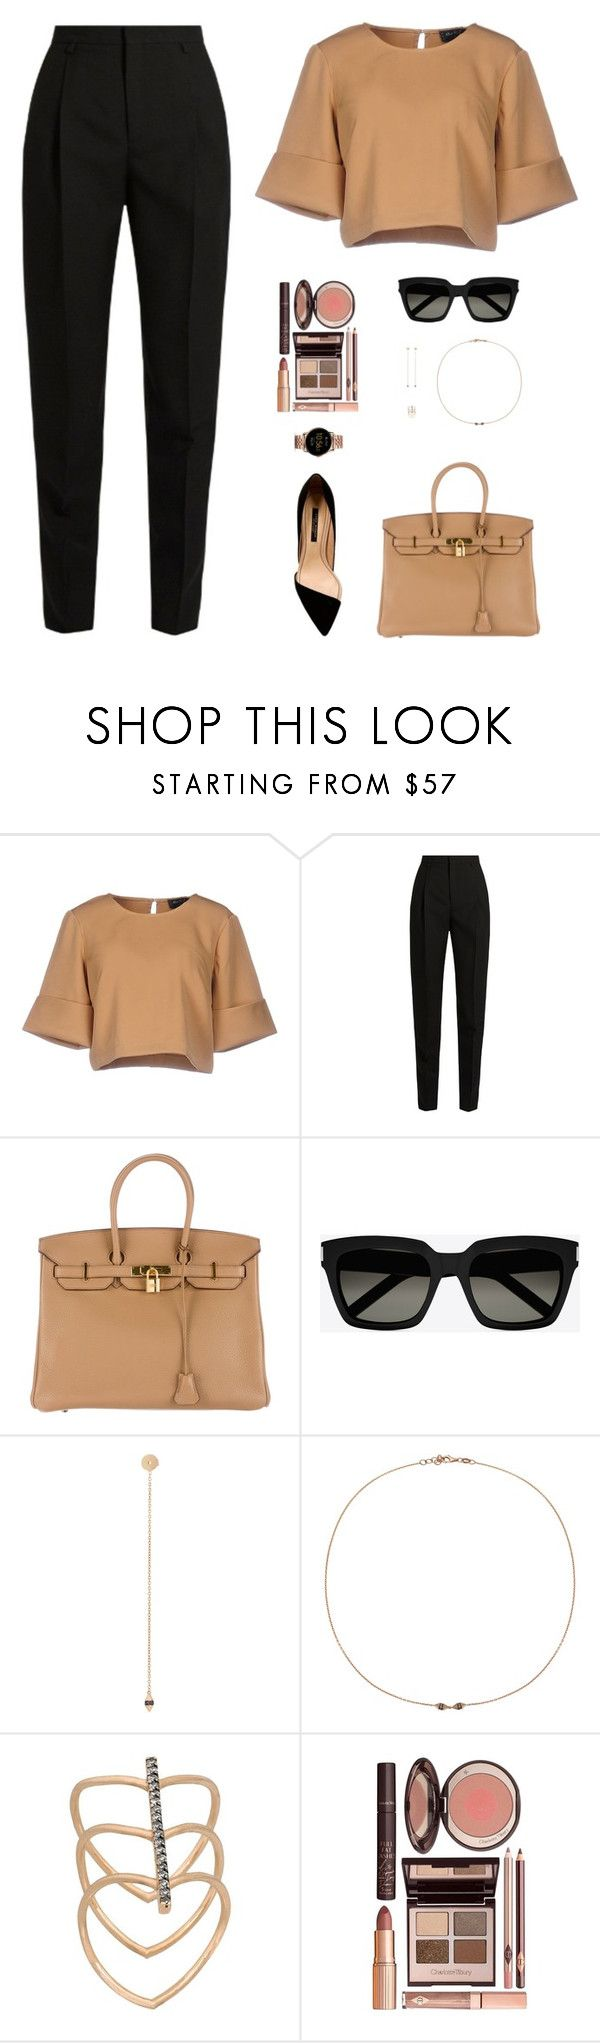 """""""Sin título #4940"""" by mdmsb on Polyvore featuring moda, The Fifth Label, Yves Saint Laurent, Hermès, Jezebel London, Charlotte Tilbury y FOSSIL"""